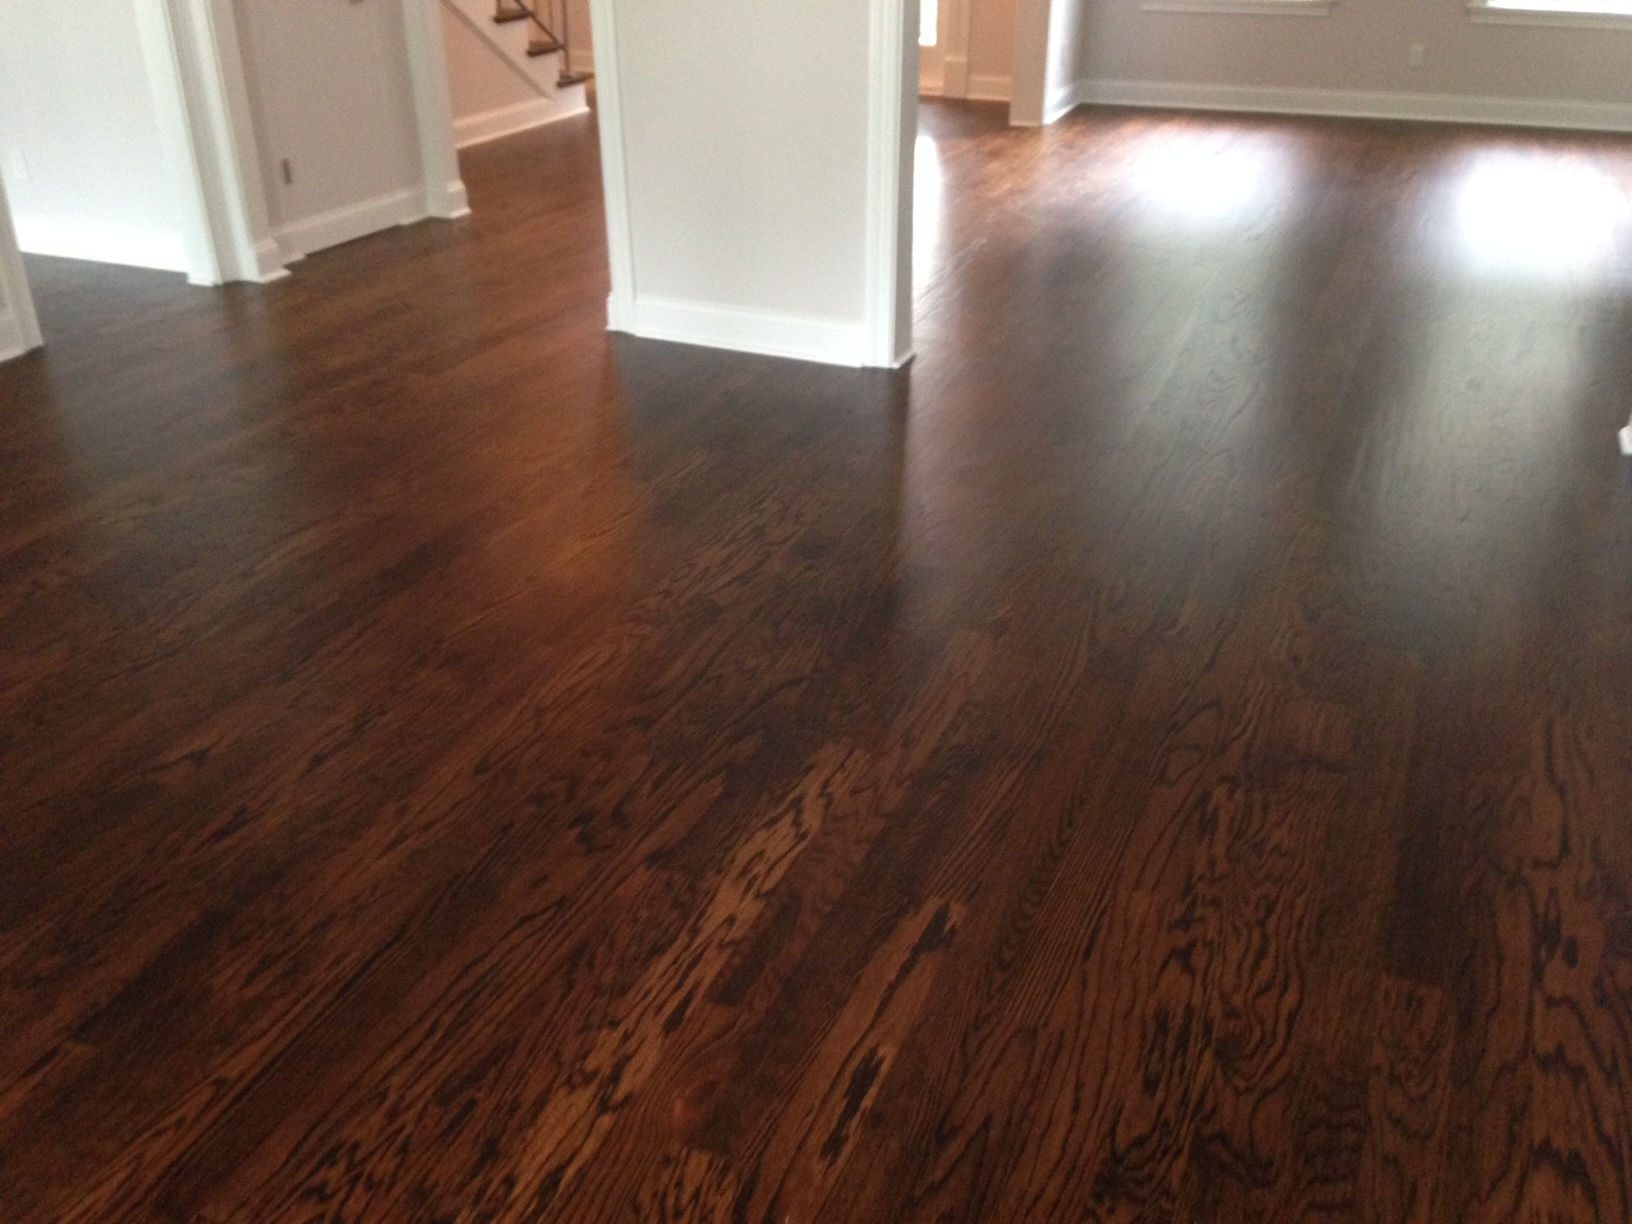 Awesome Recoating Wood Floors Photos Flooring amp Area